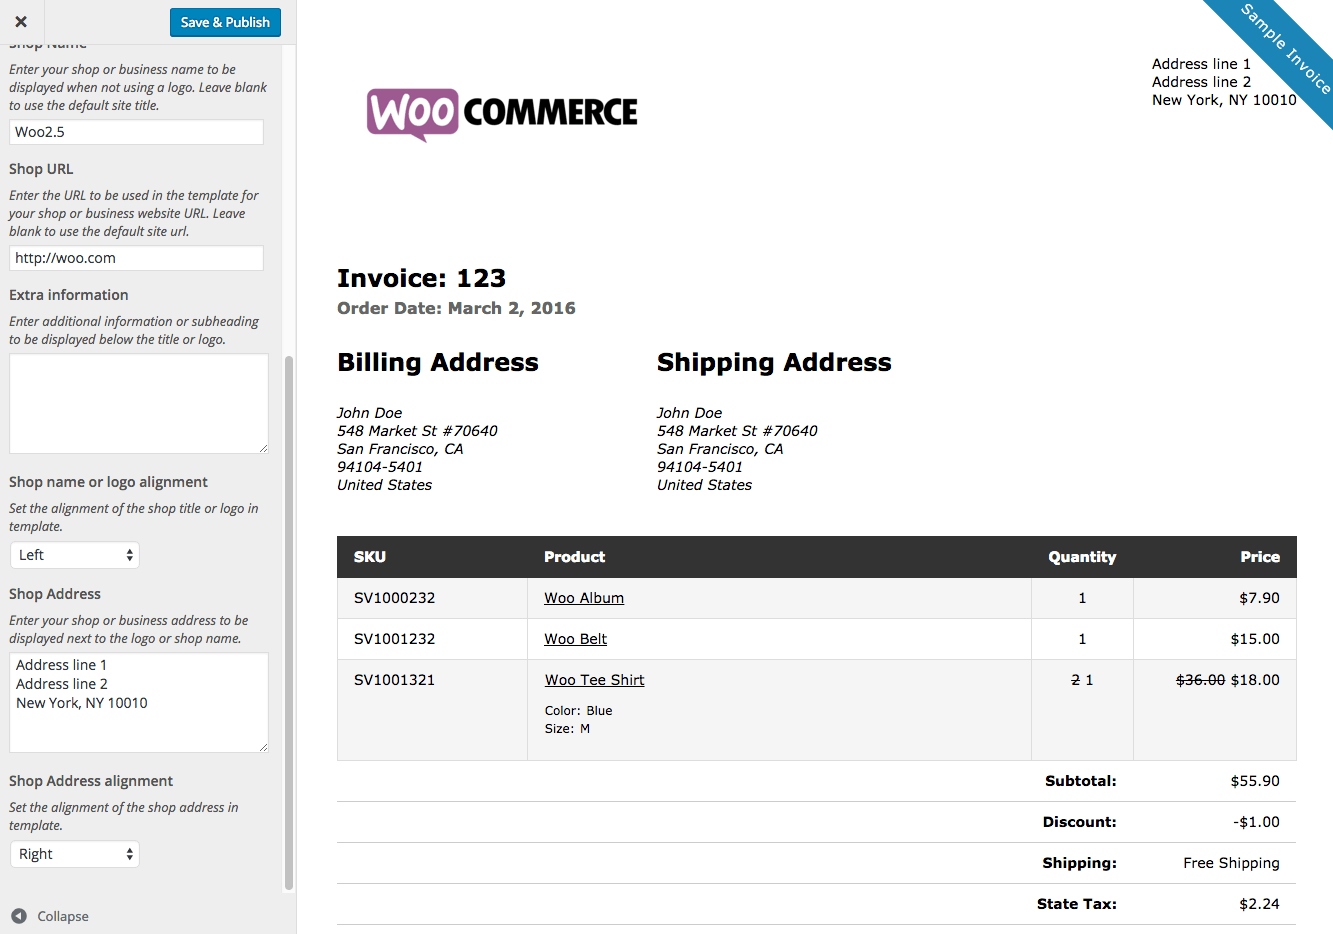 Usdgus  Unusual Woocommerce Print Invoices Amp Packing Lists  Woocommerce Docs With Heavenly Woocommerce Print Invoices  Packing Lists Customizer With Attractive Blank Receipt Template Pdf Also Receipt Spikes In Addition Rent Receipt Word Format And Returnreceiptto As Well As Receipt For Payment Template Free Additionally Receipts In Accounting From Docswoocommercecom With Usdgus  Heavenly Woocommerce Print Invoices Amp Packing Lists  Woocommerce Docs With Attractive Woocommerce Print Invoices  Packing Lists Customizer And Unusual Blank Receipt Template Pdf Also Receipt Spikes In Addition Rent Receipt Word Format From Docswoocommercecom